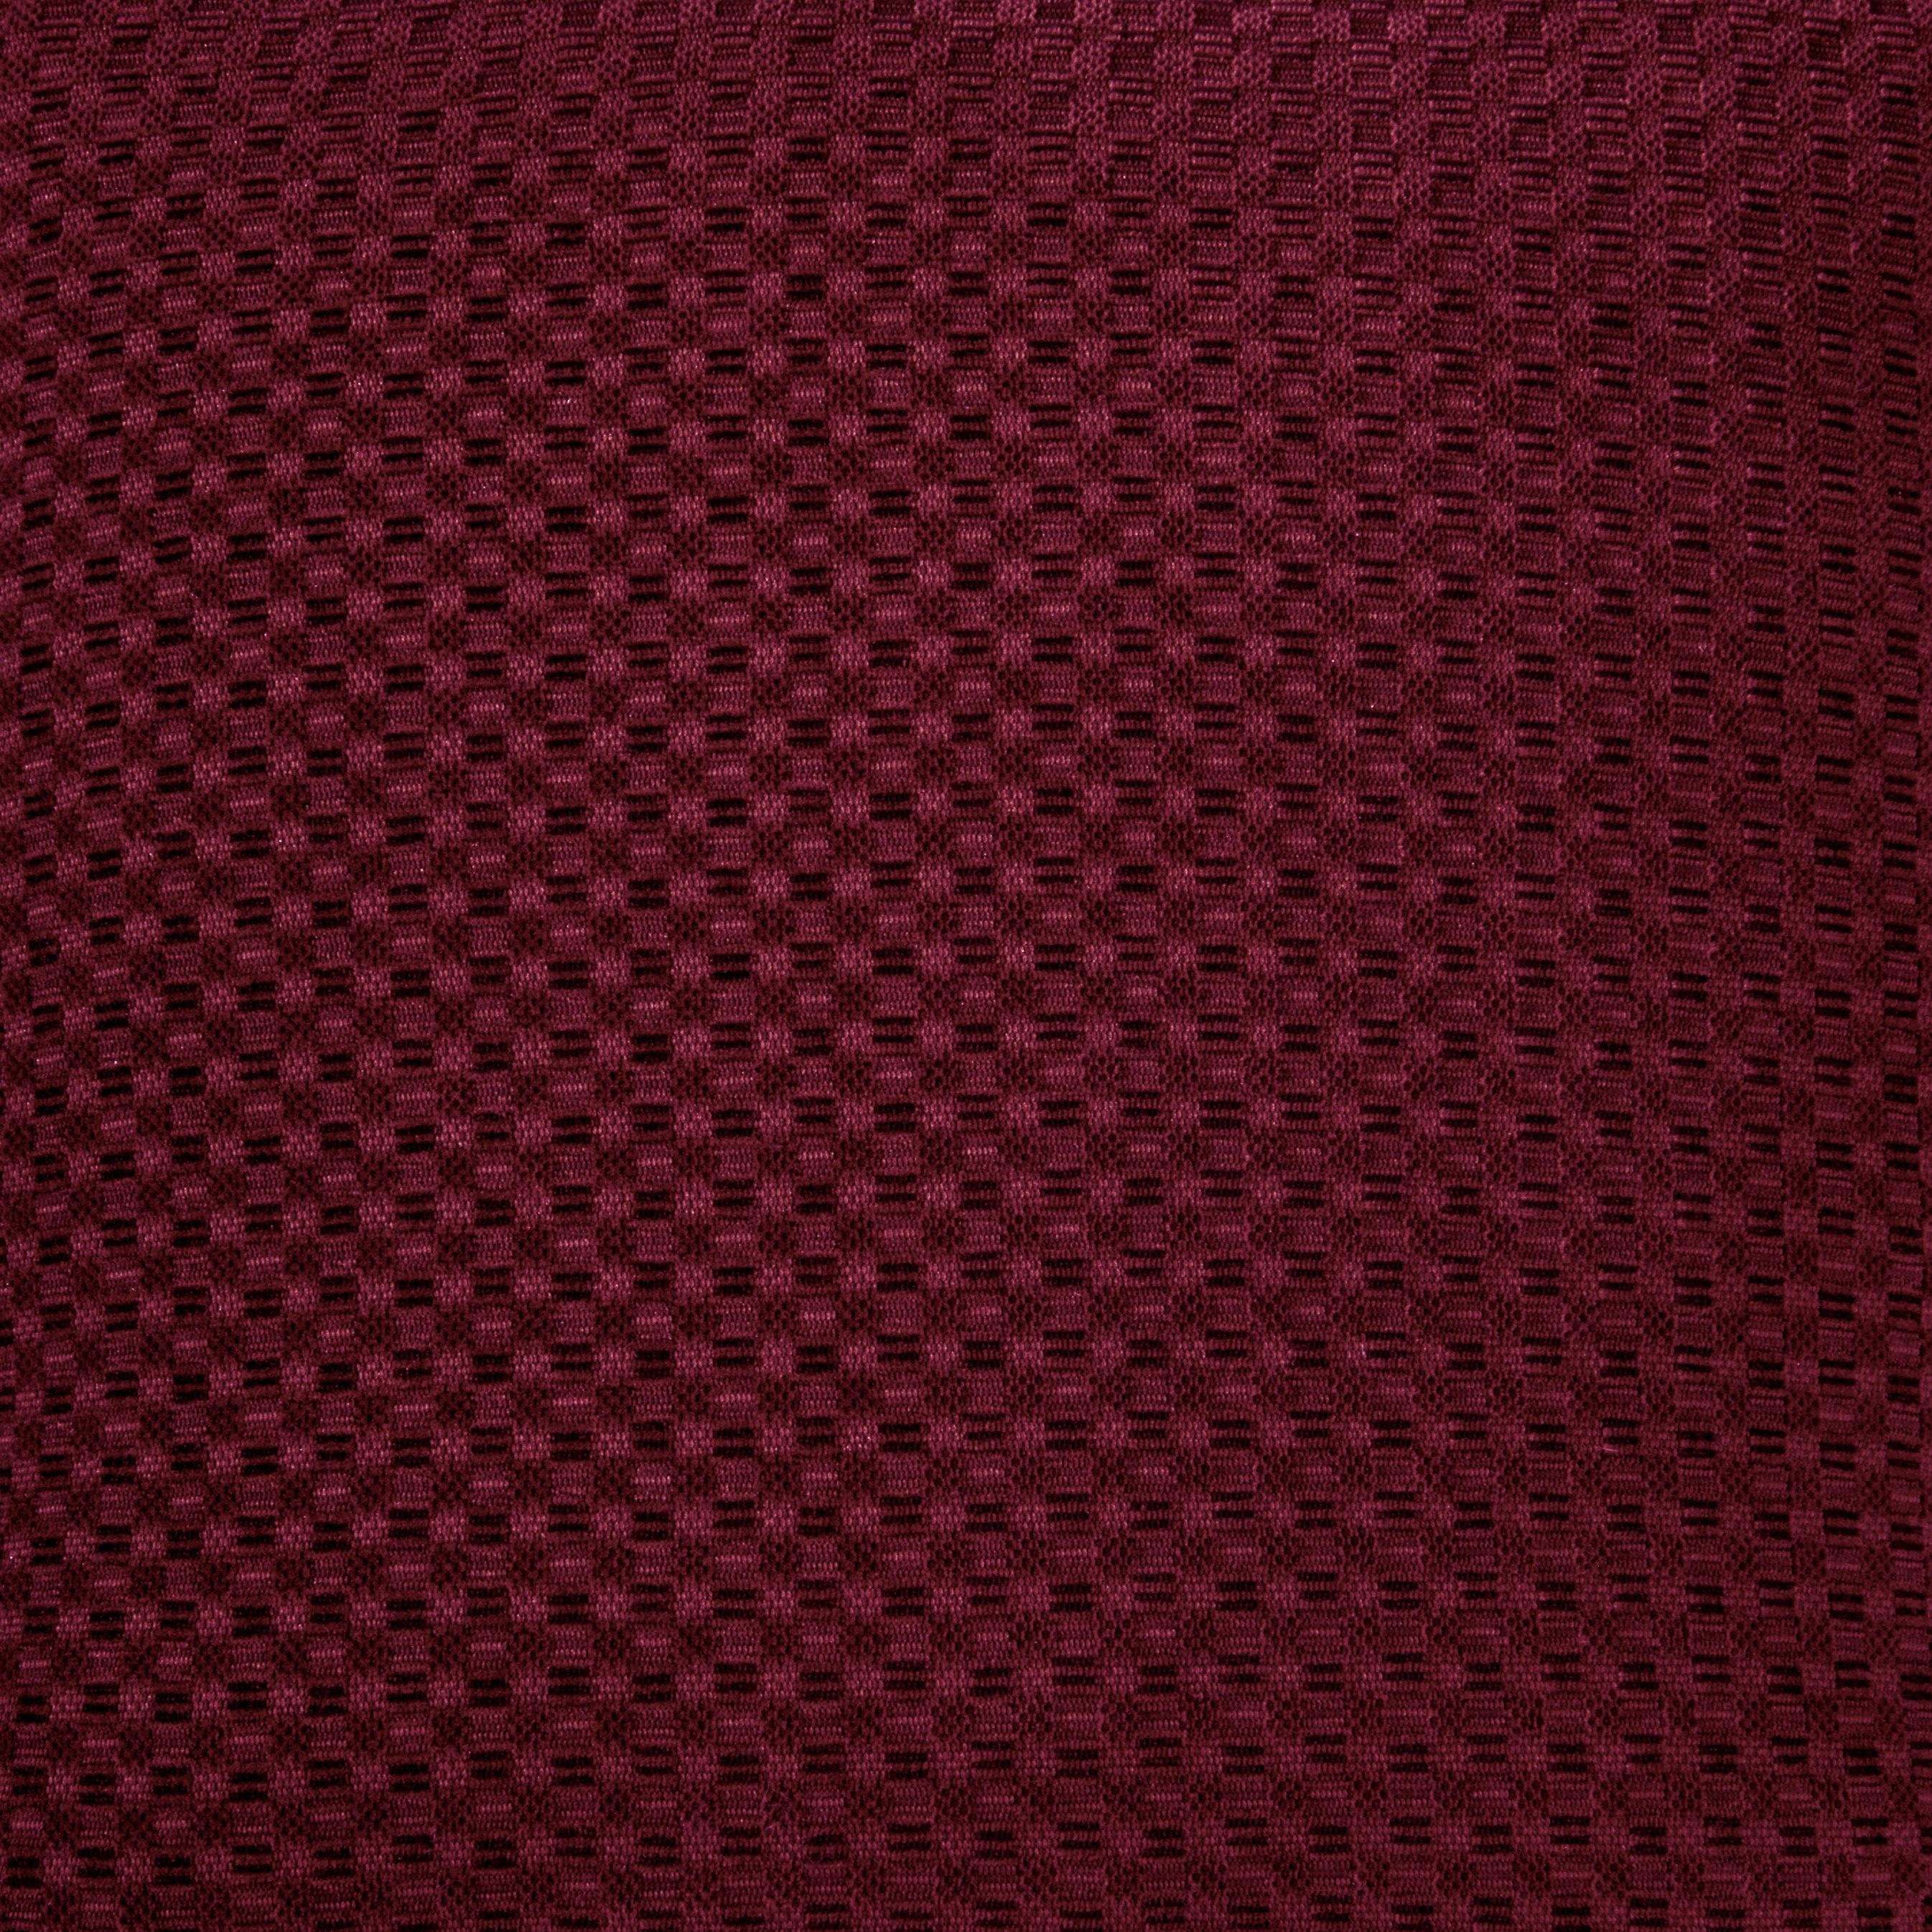 Sanctuary Galway Stretch T Cushion Loveseat Slipcover   Ebay Inside Loveseat Slipcovers T Cushion (View 8 of 20)